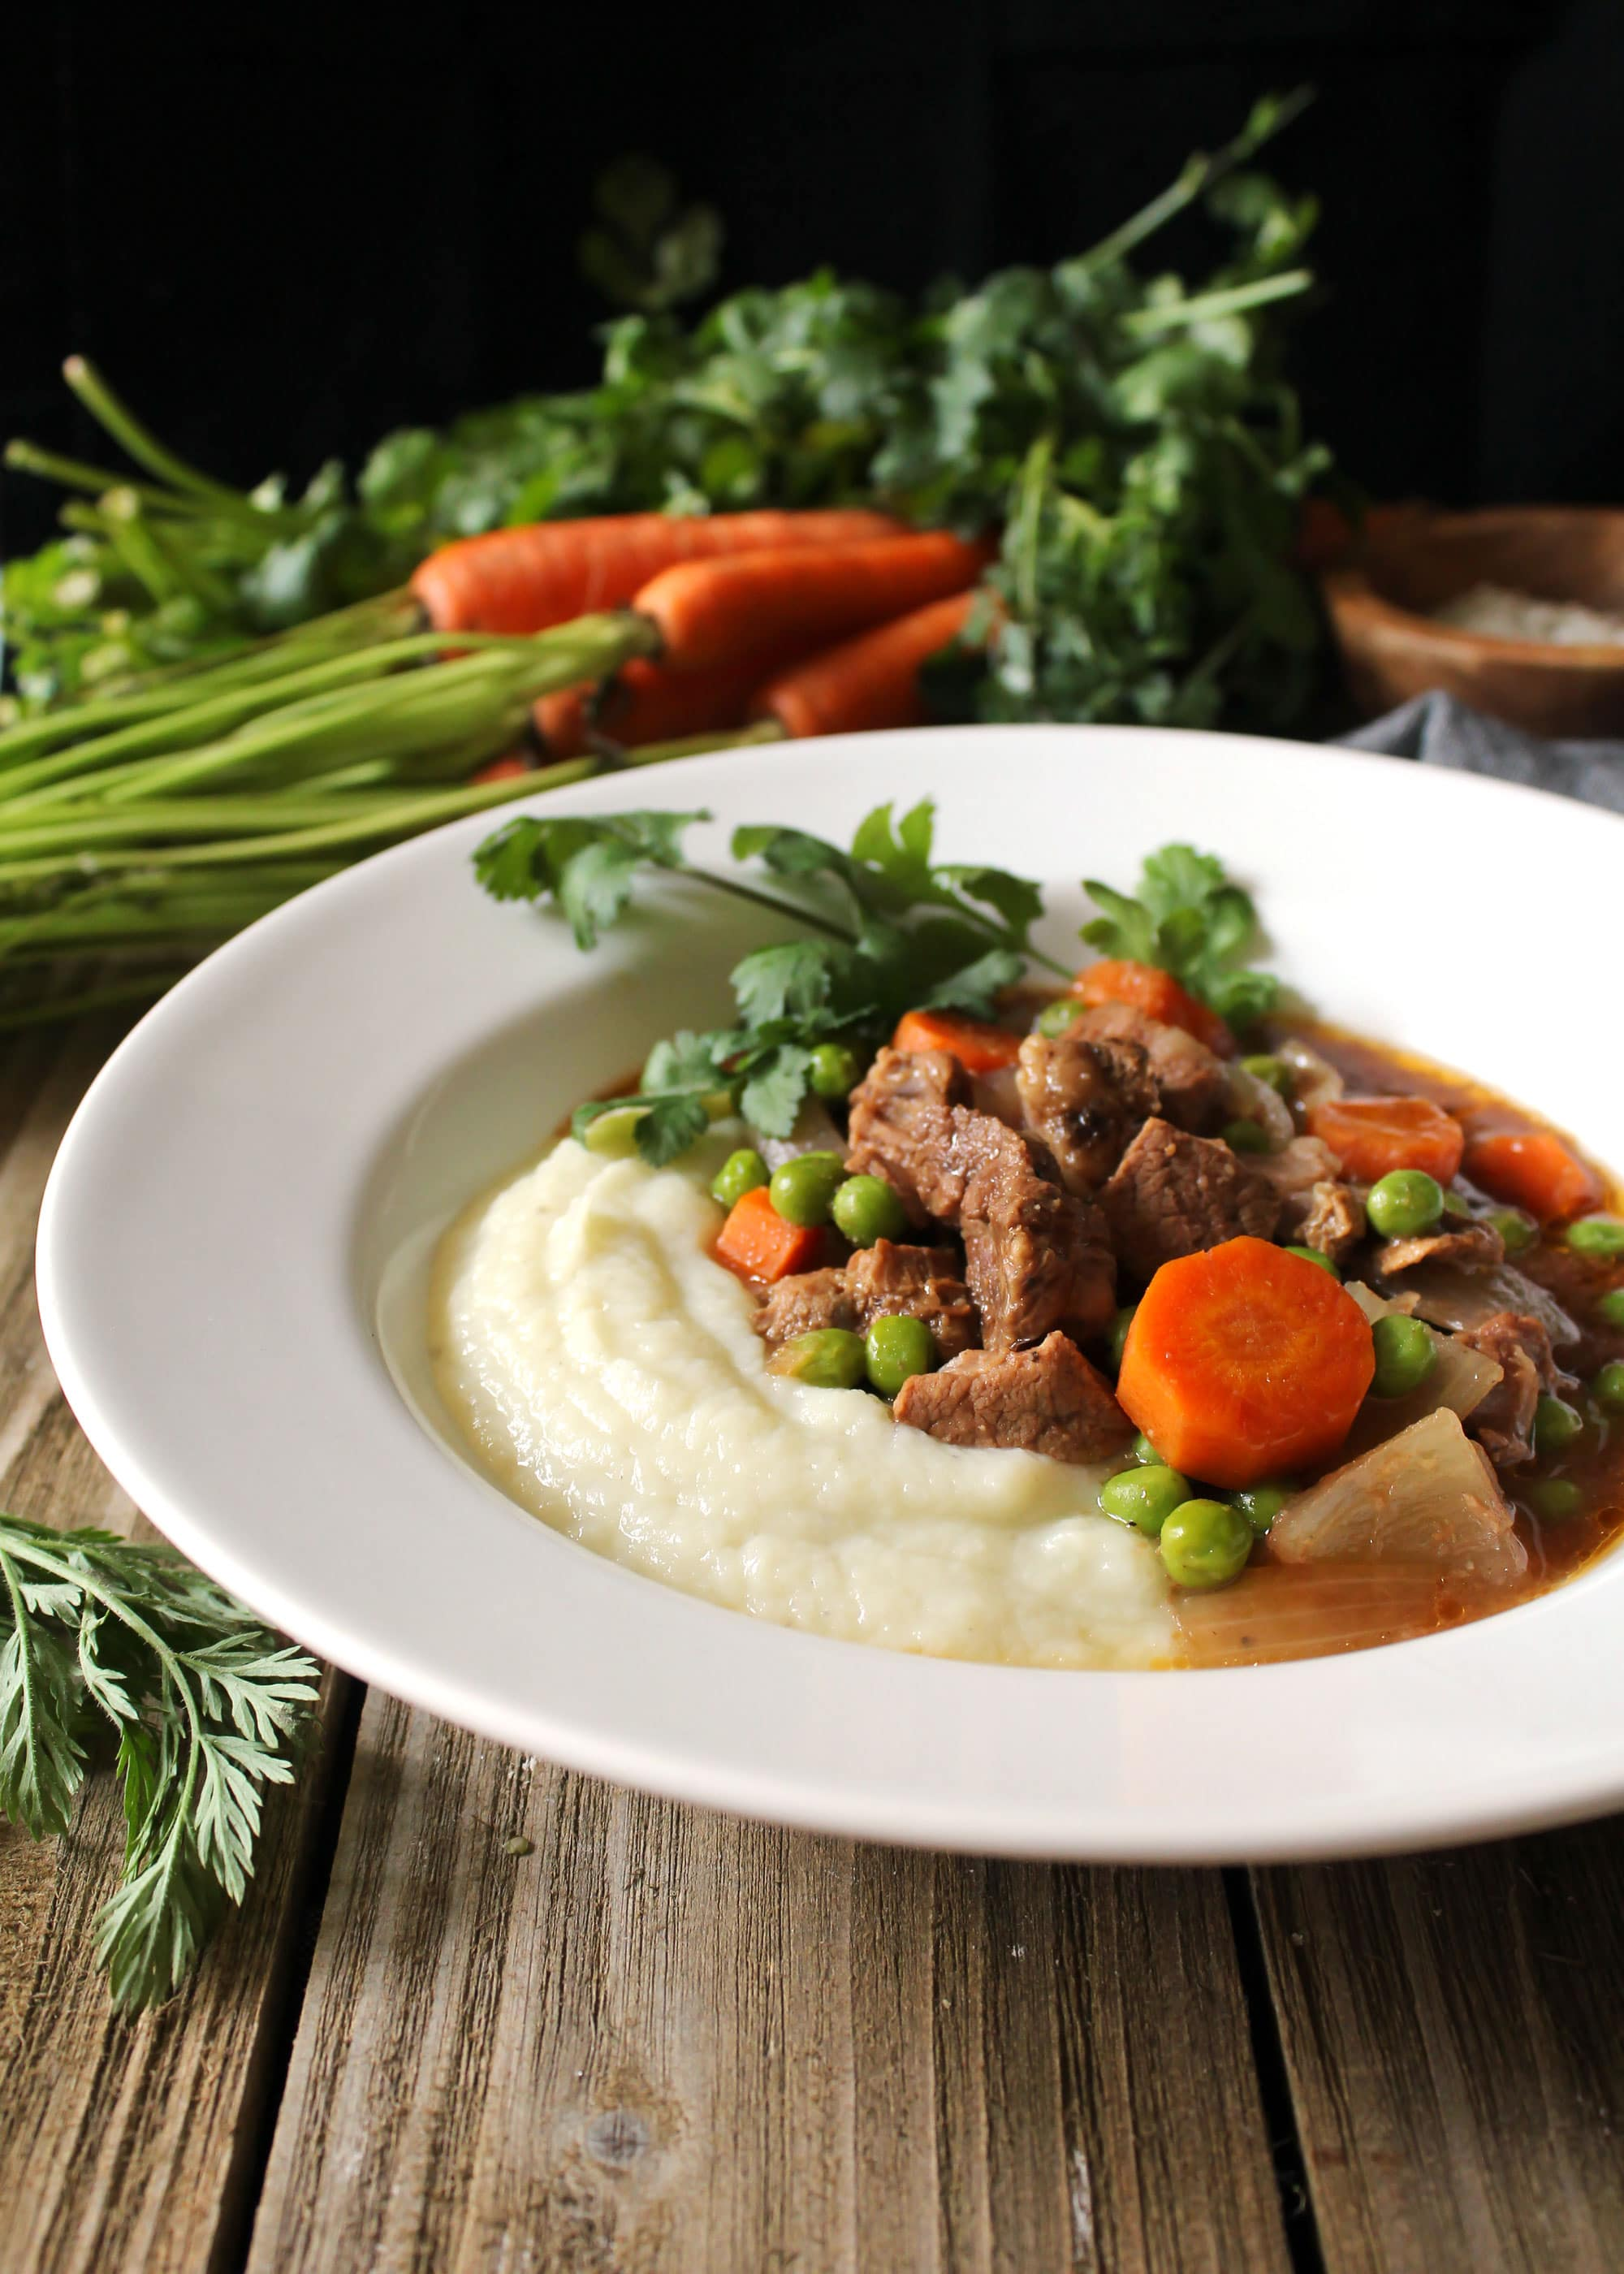 beef and vegetables over mashed cauliflower in white bowl